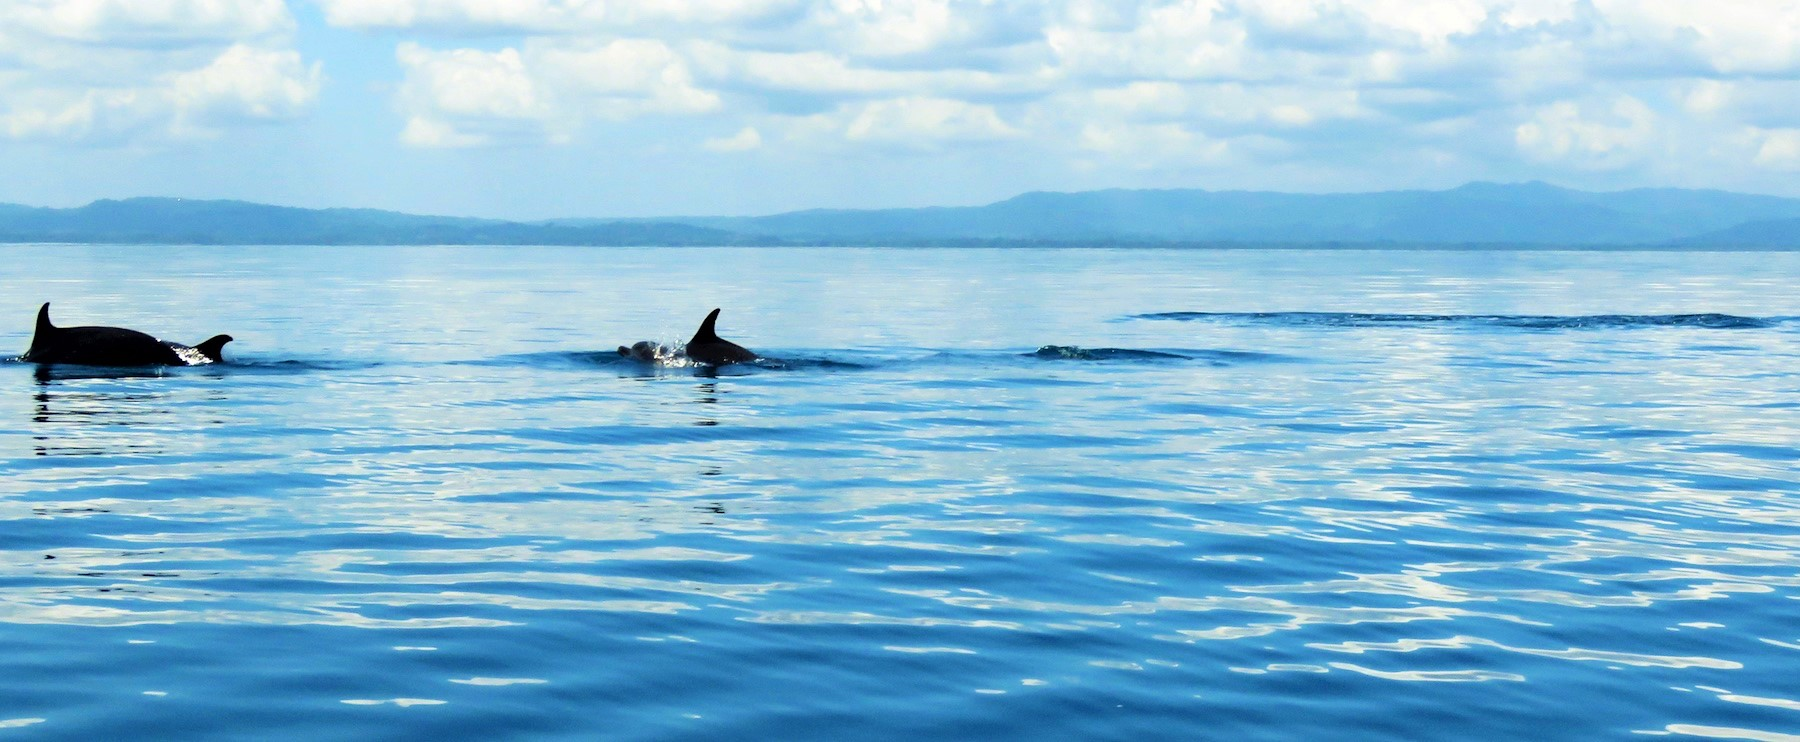 whales and dolphins observations